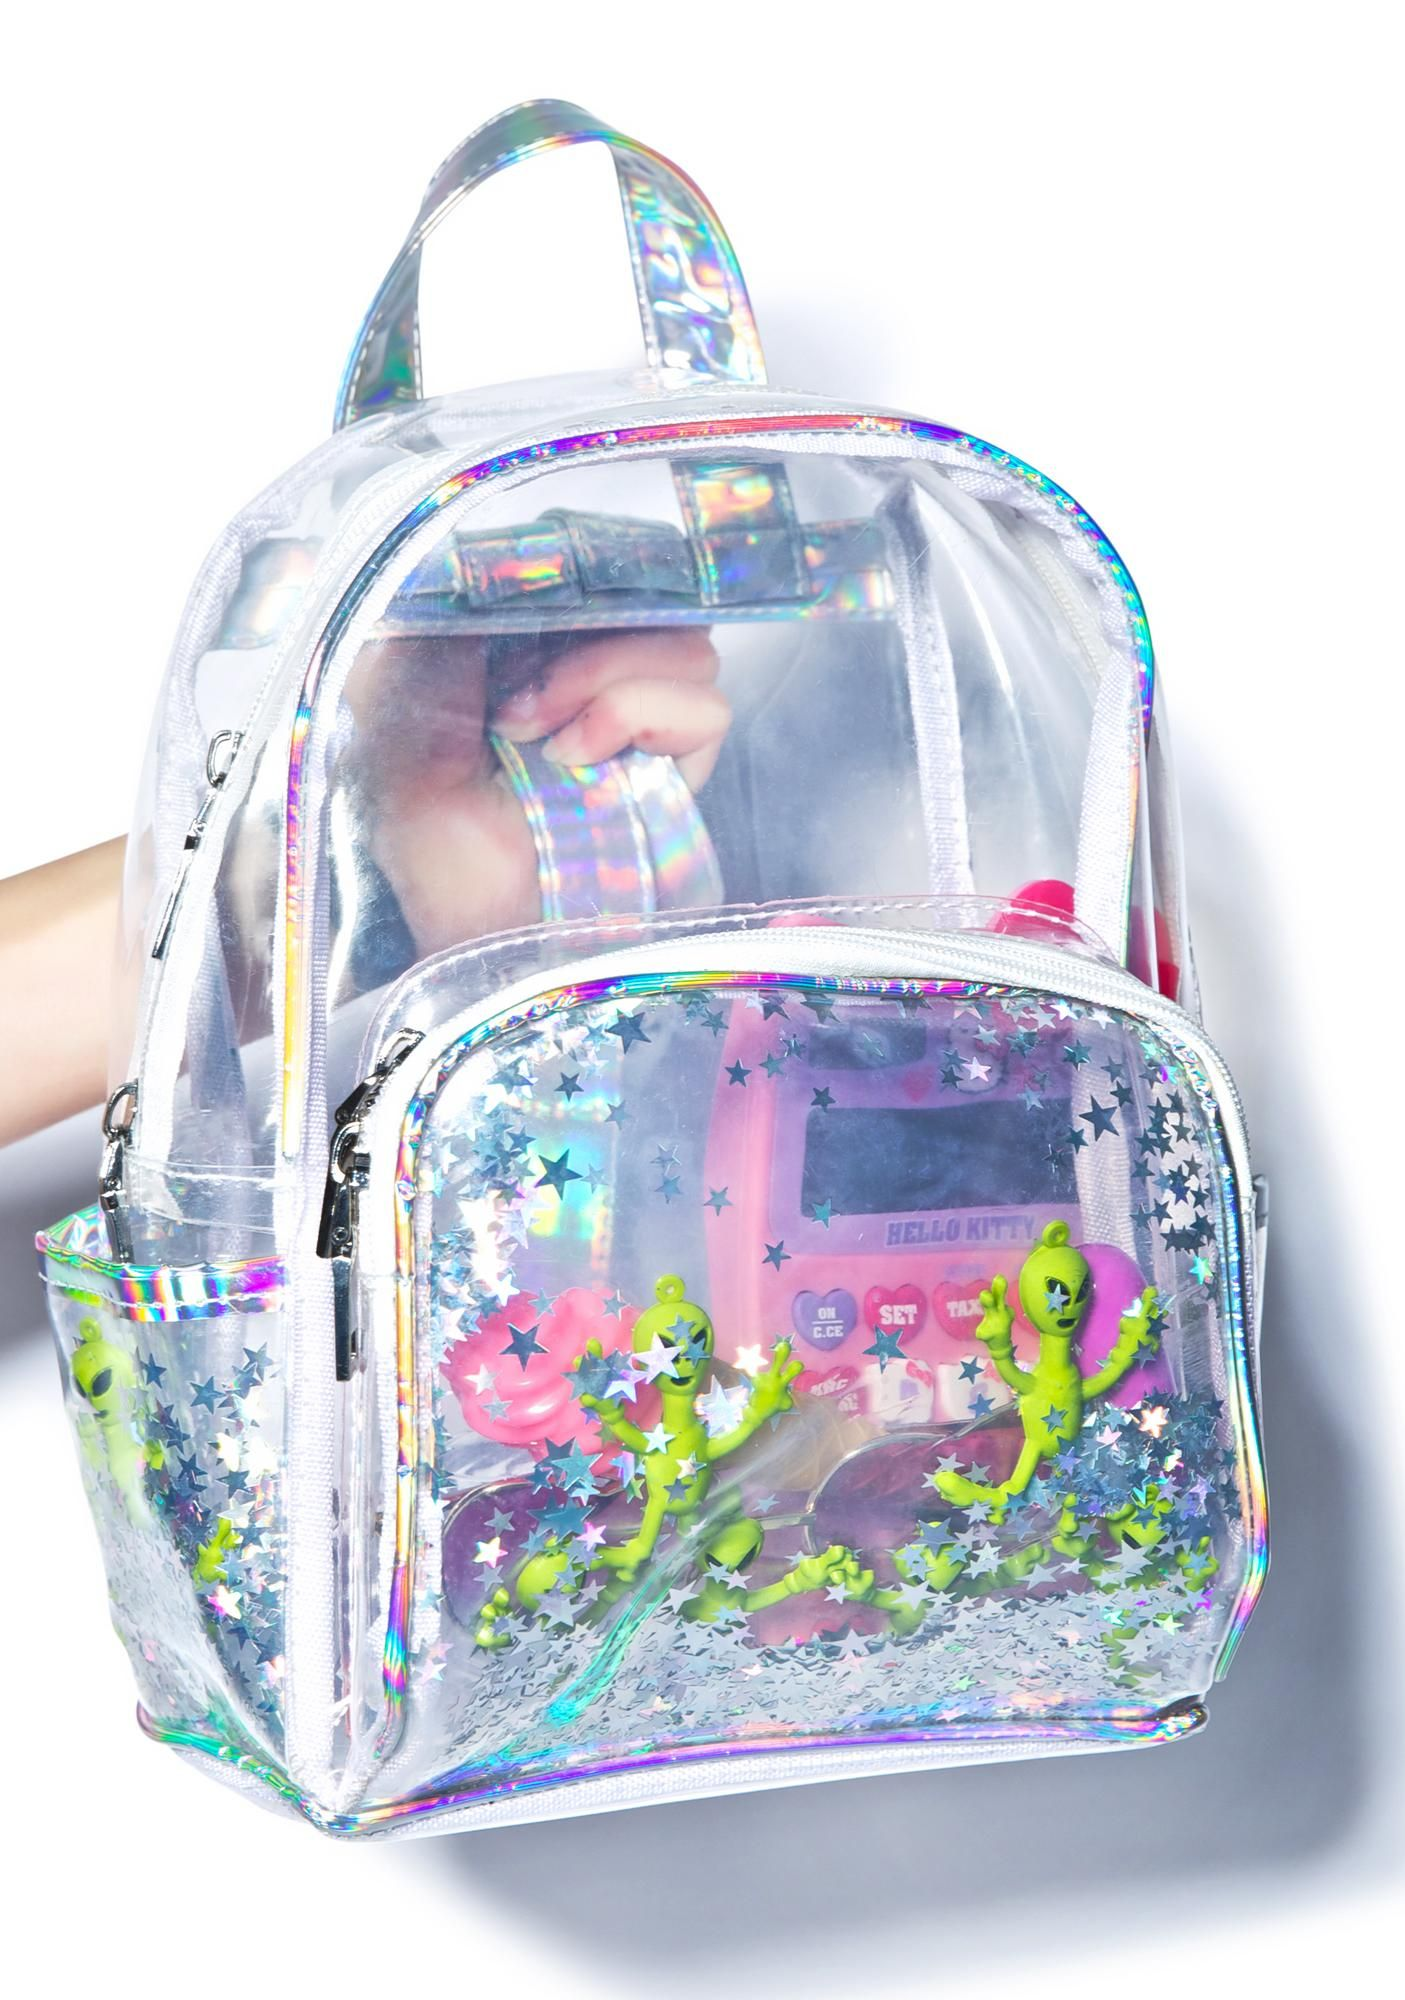 593e891249 Pin by Mochi on Backpacks